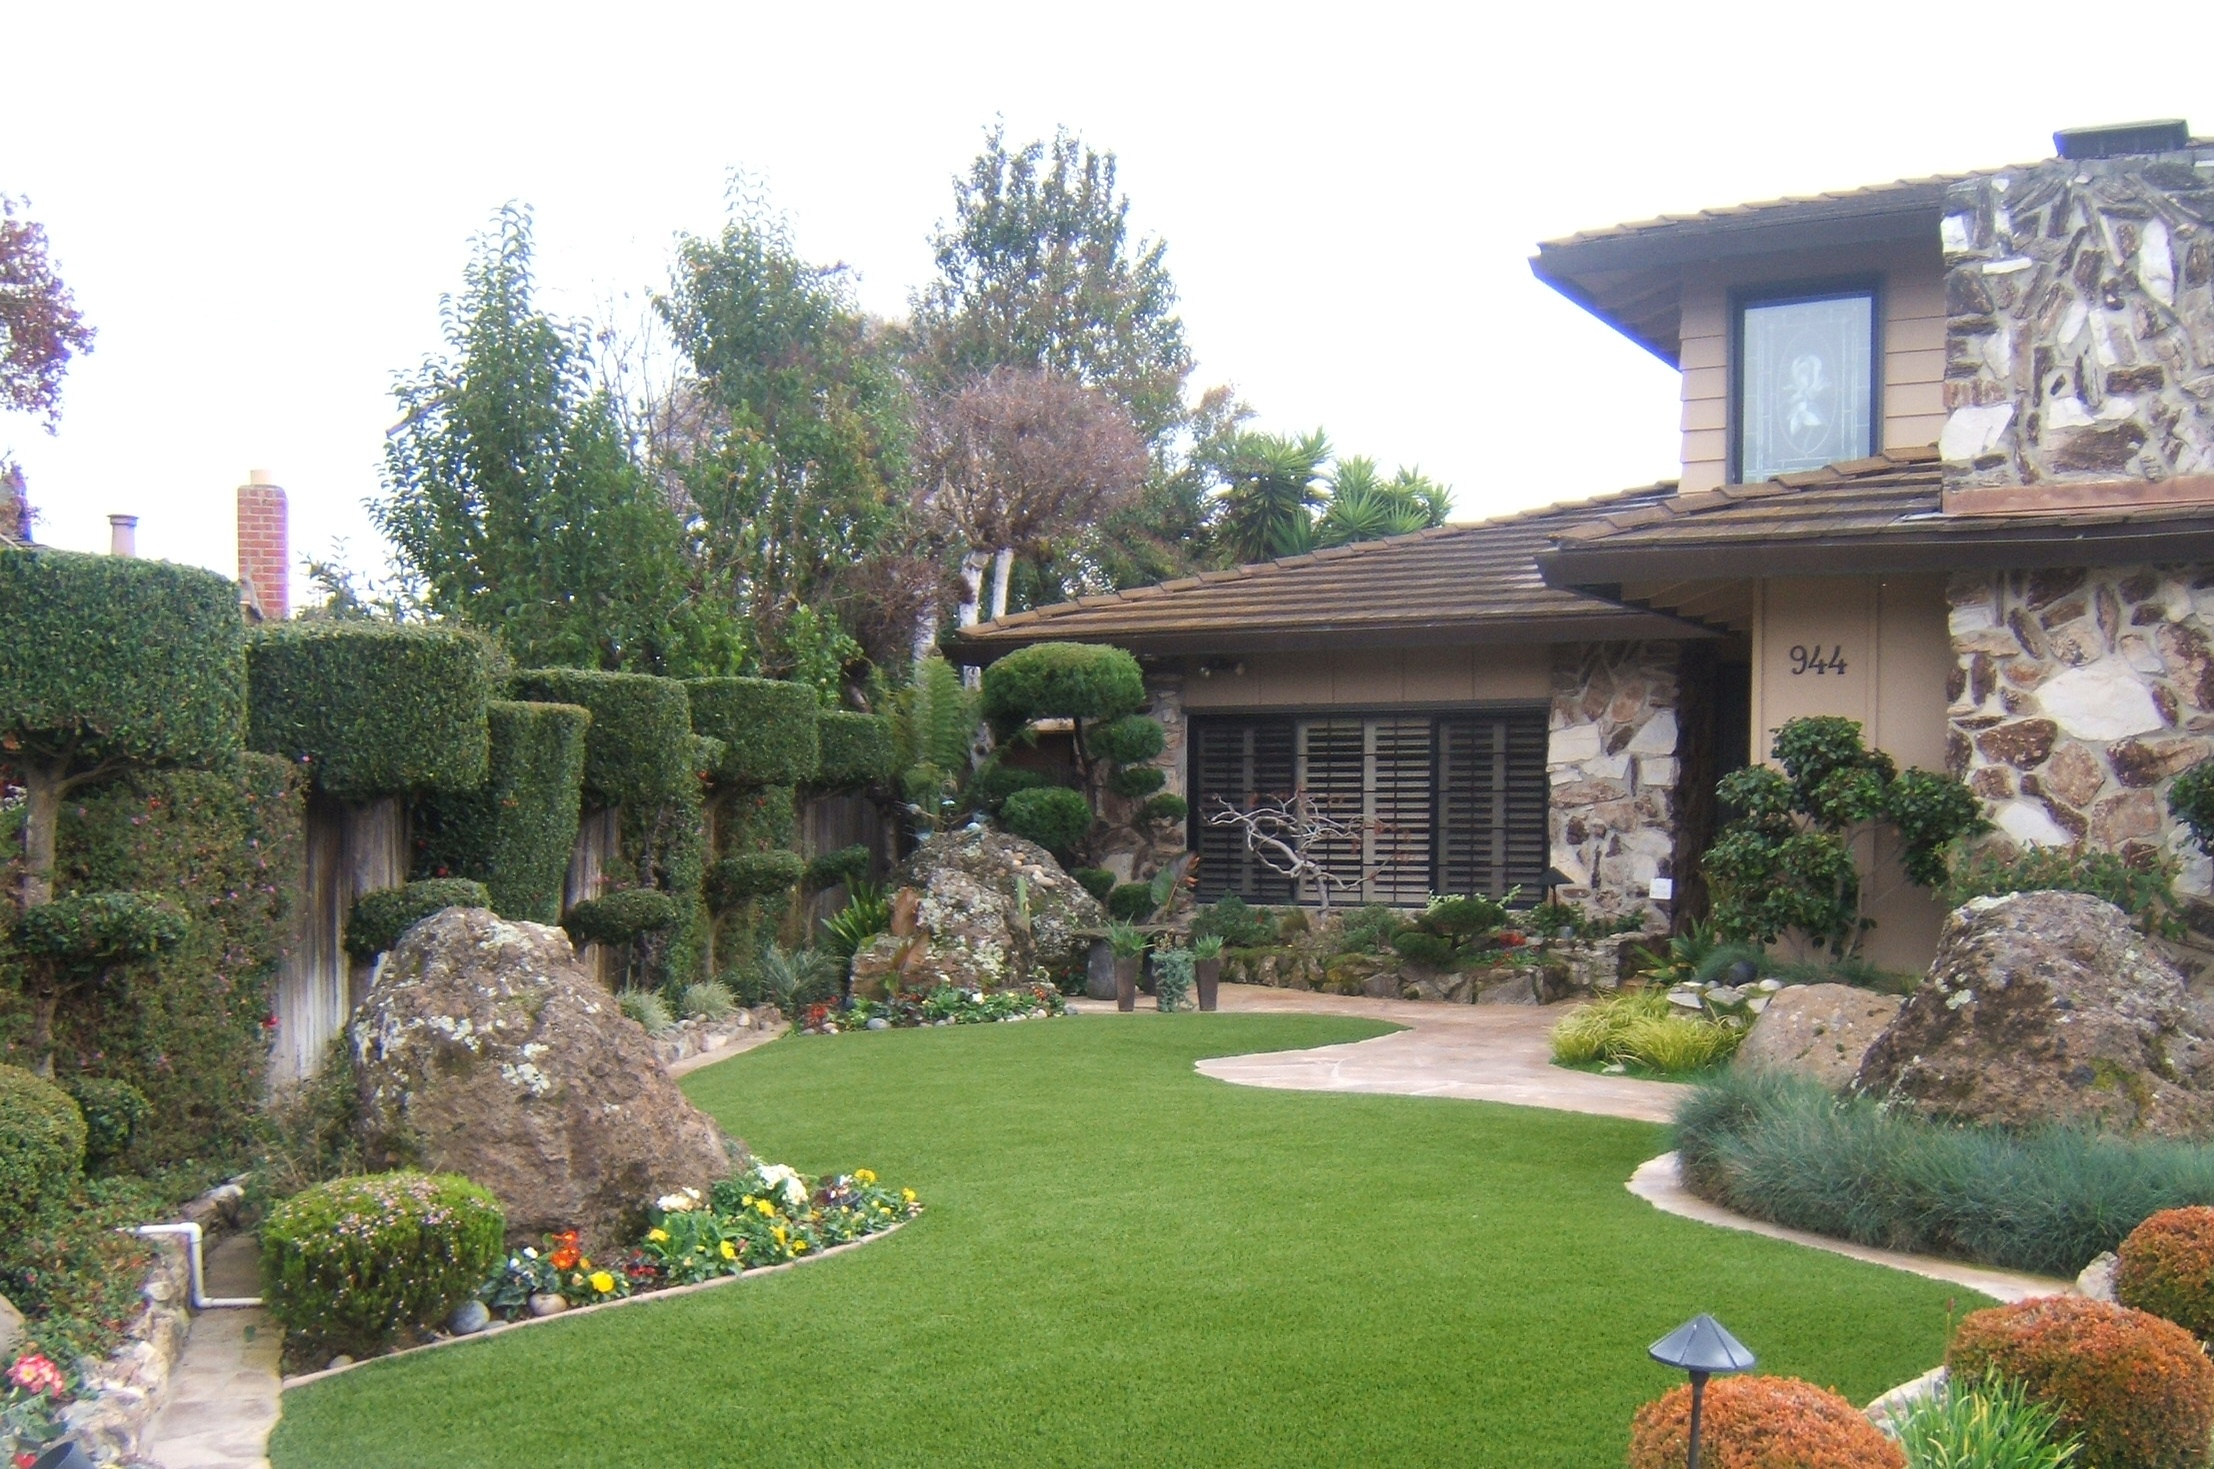 Usefulness of Artificial Turf for your home